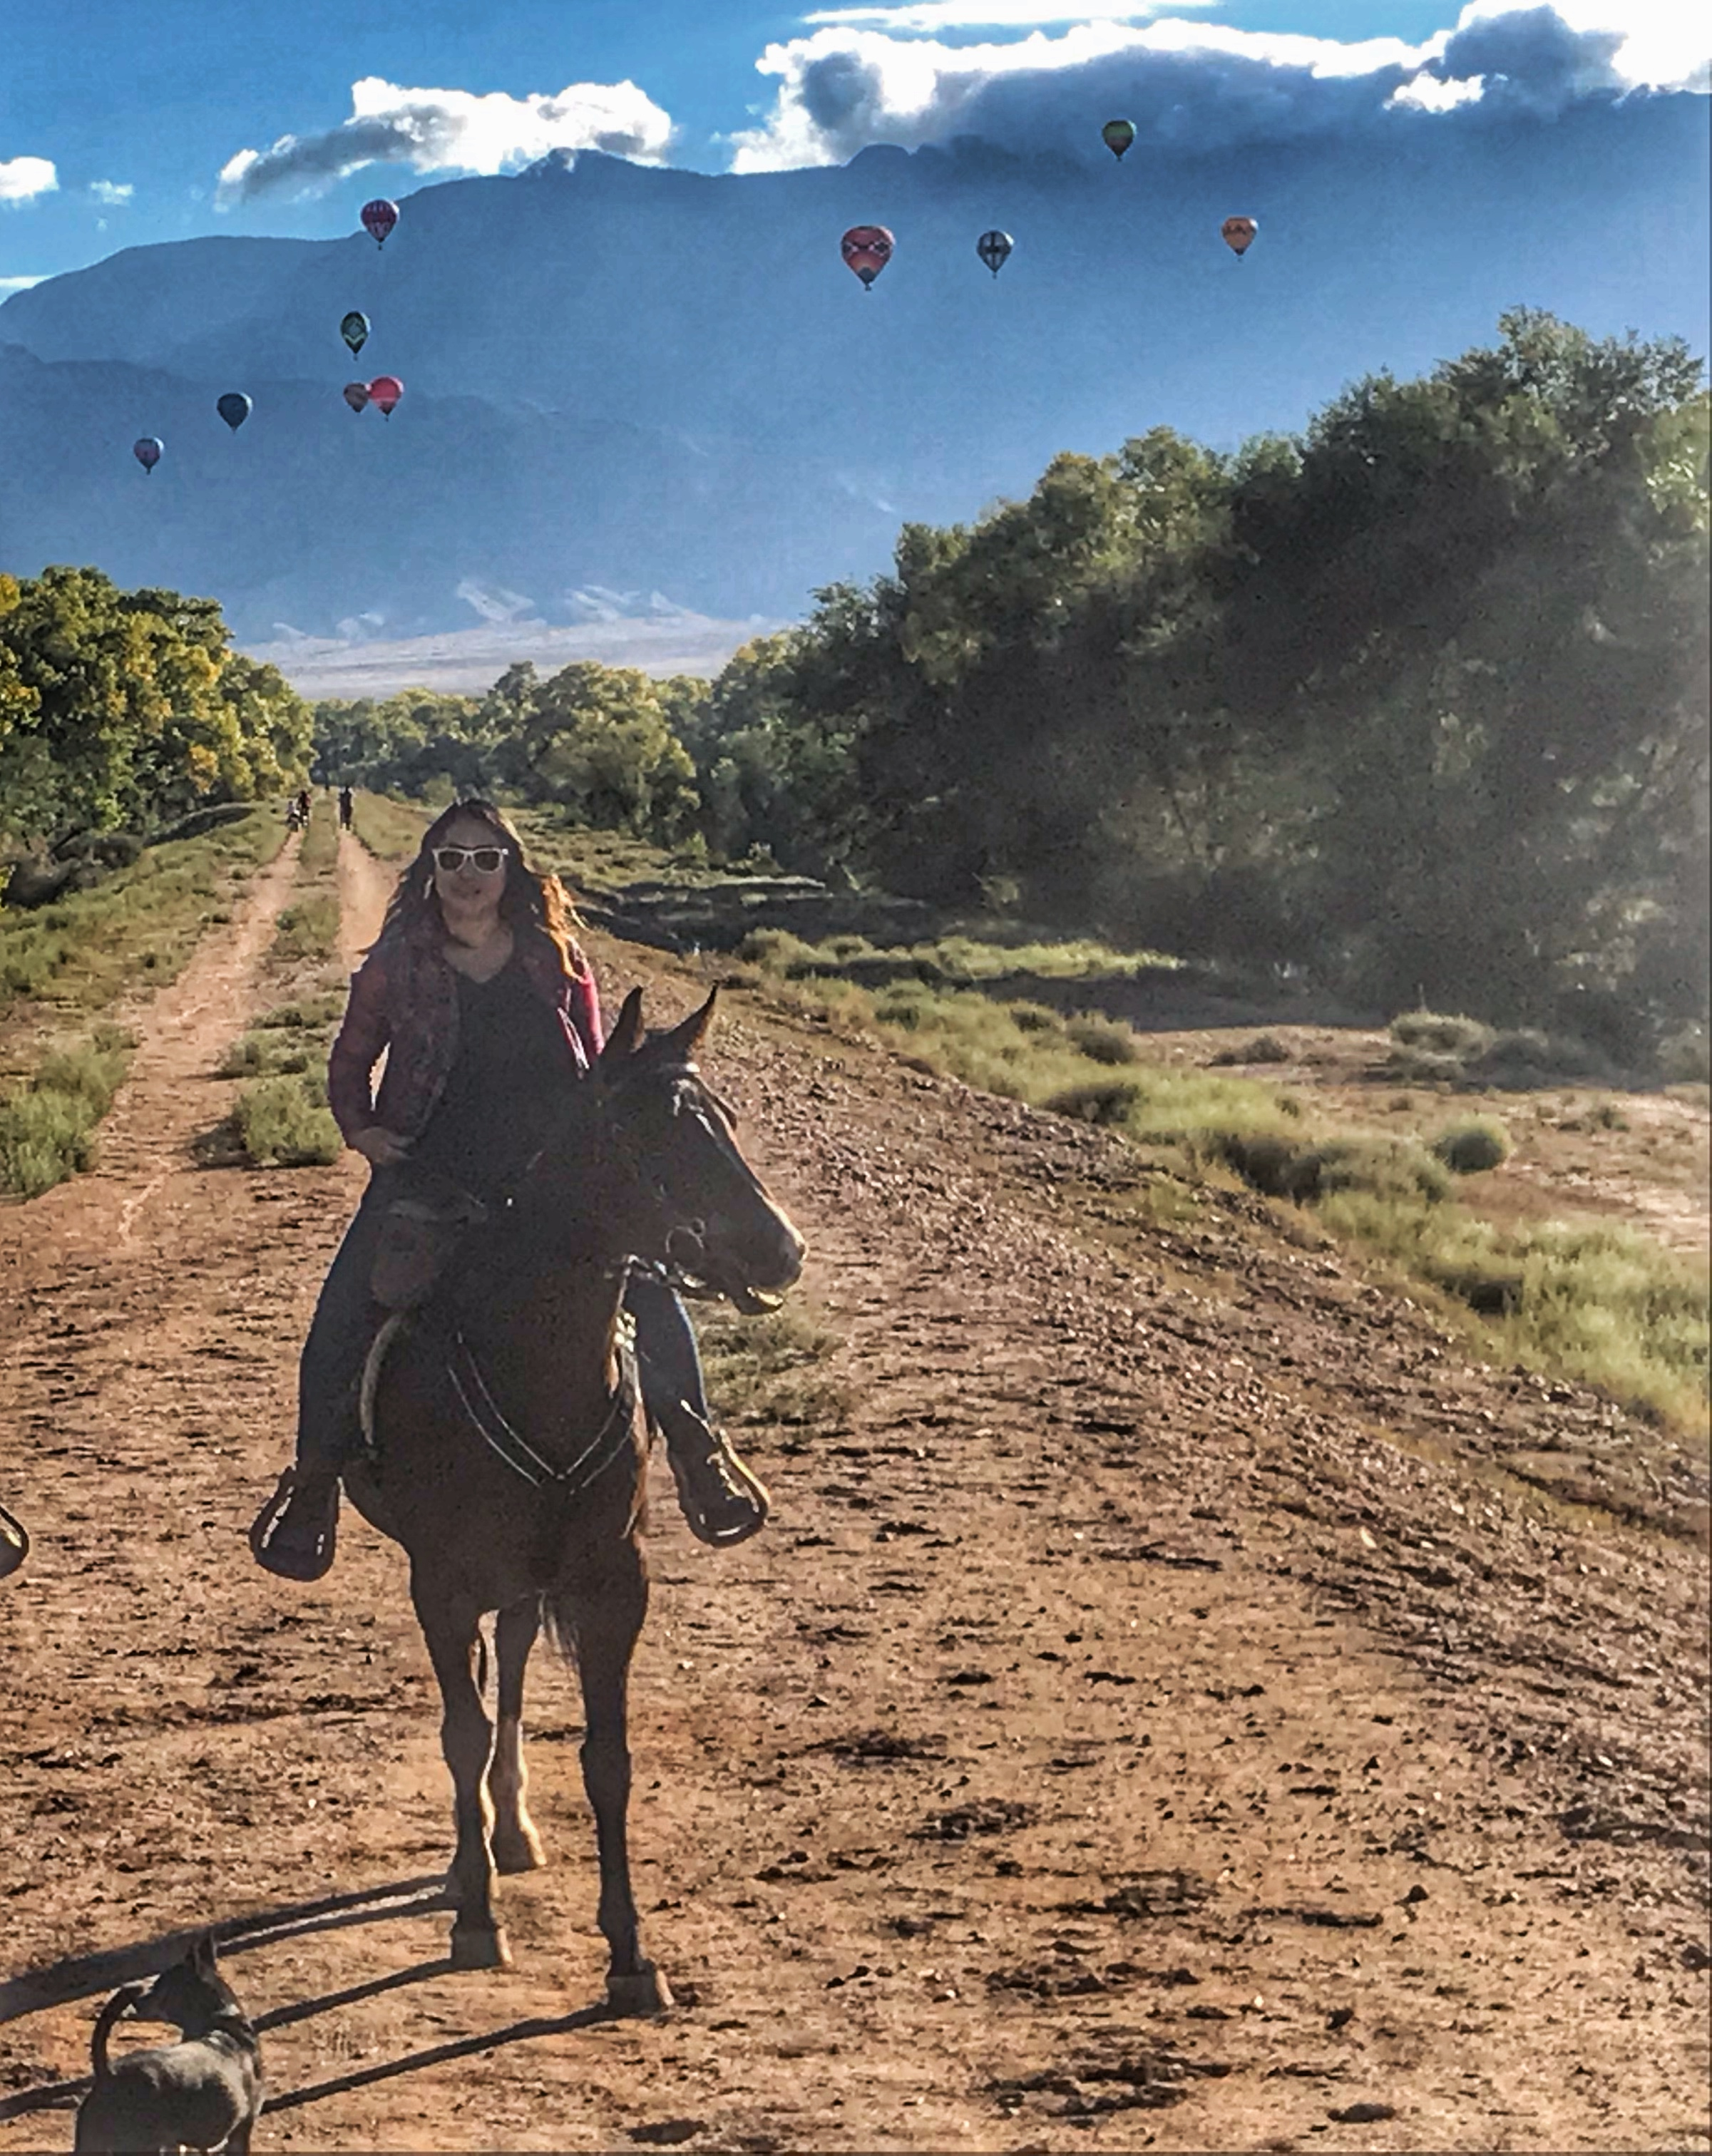 There are no words to describe seeing hundreds of balloons during the Albuquerque Balloon Fiesta on horseback! - - Jules